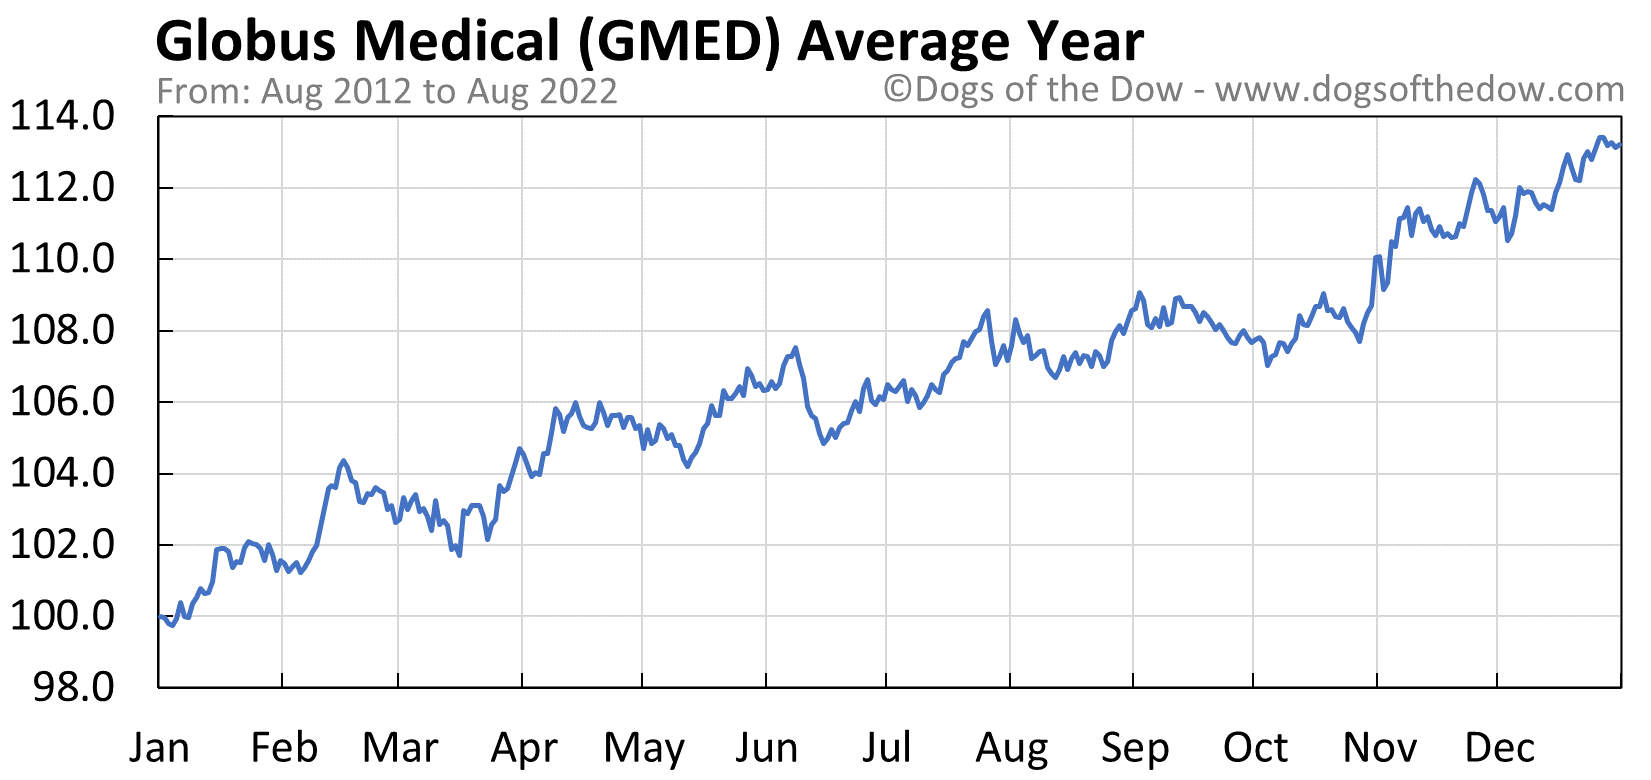 GMED average year chart